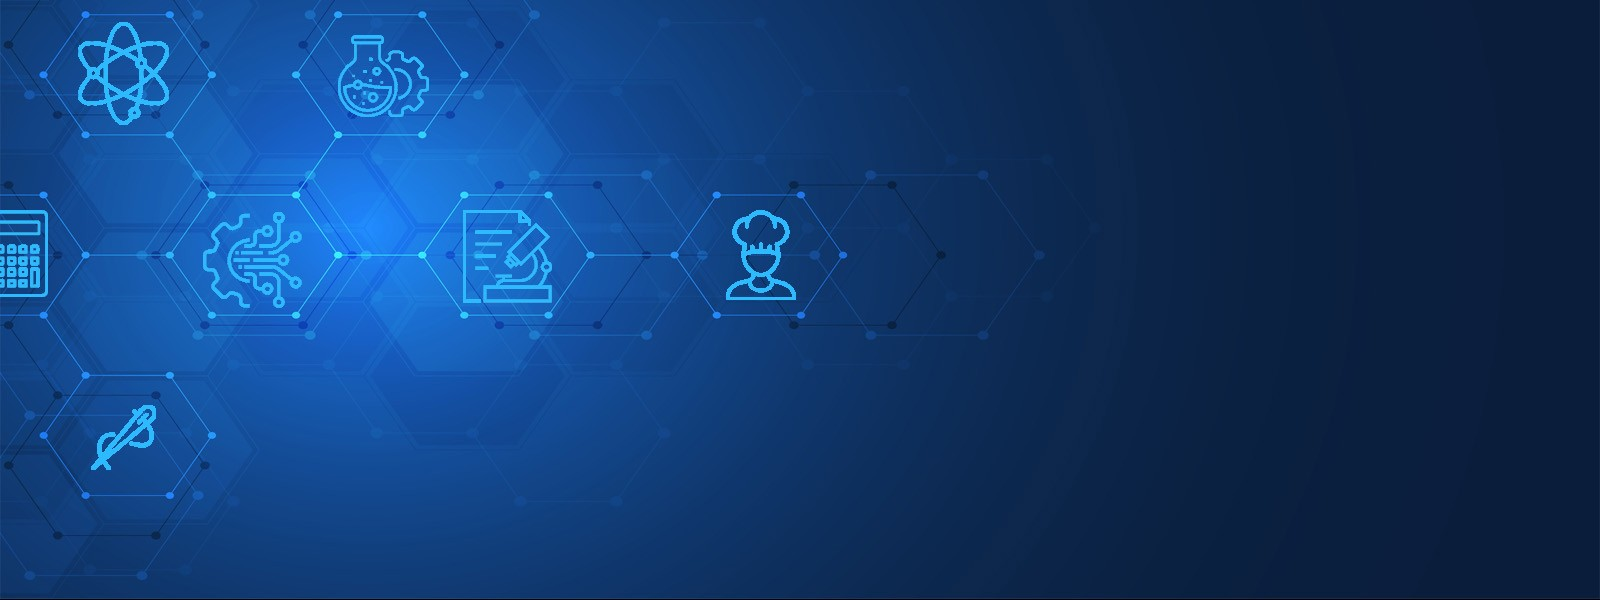 blue background with various stem icons on the left